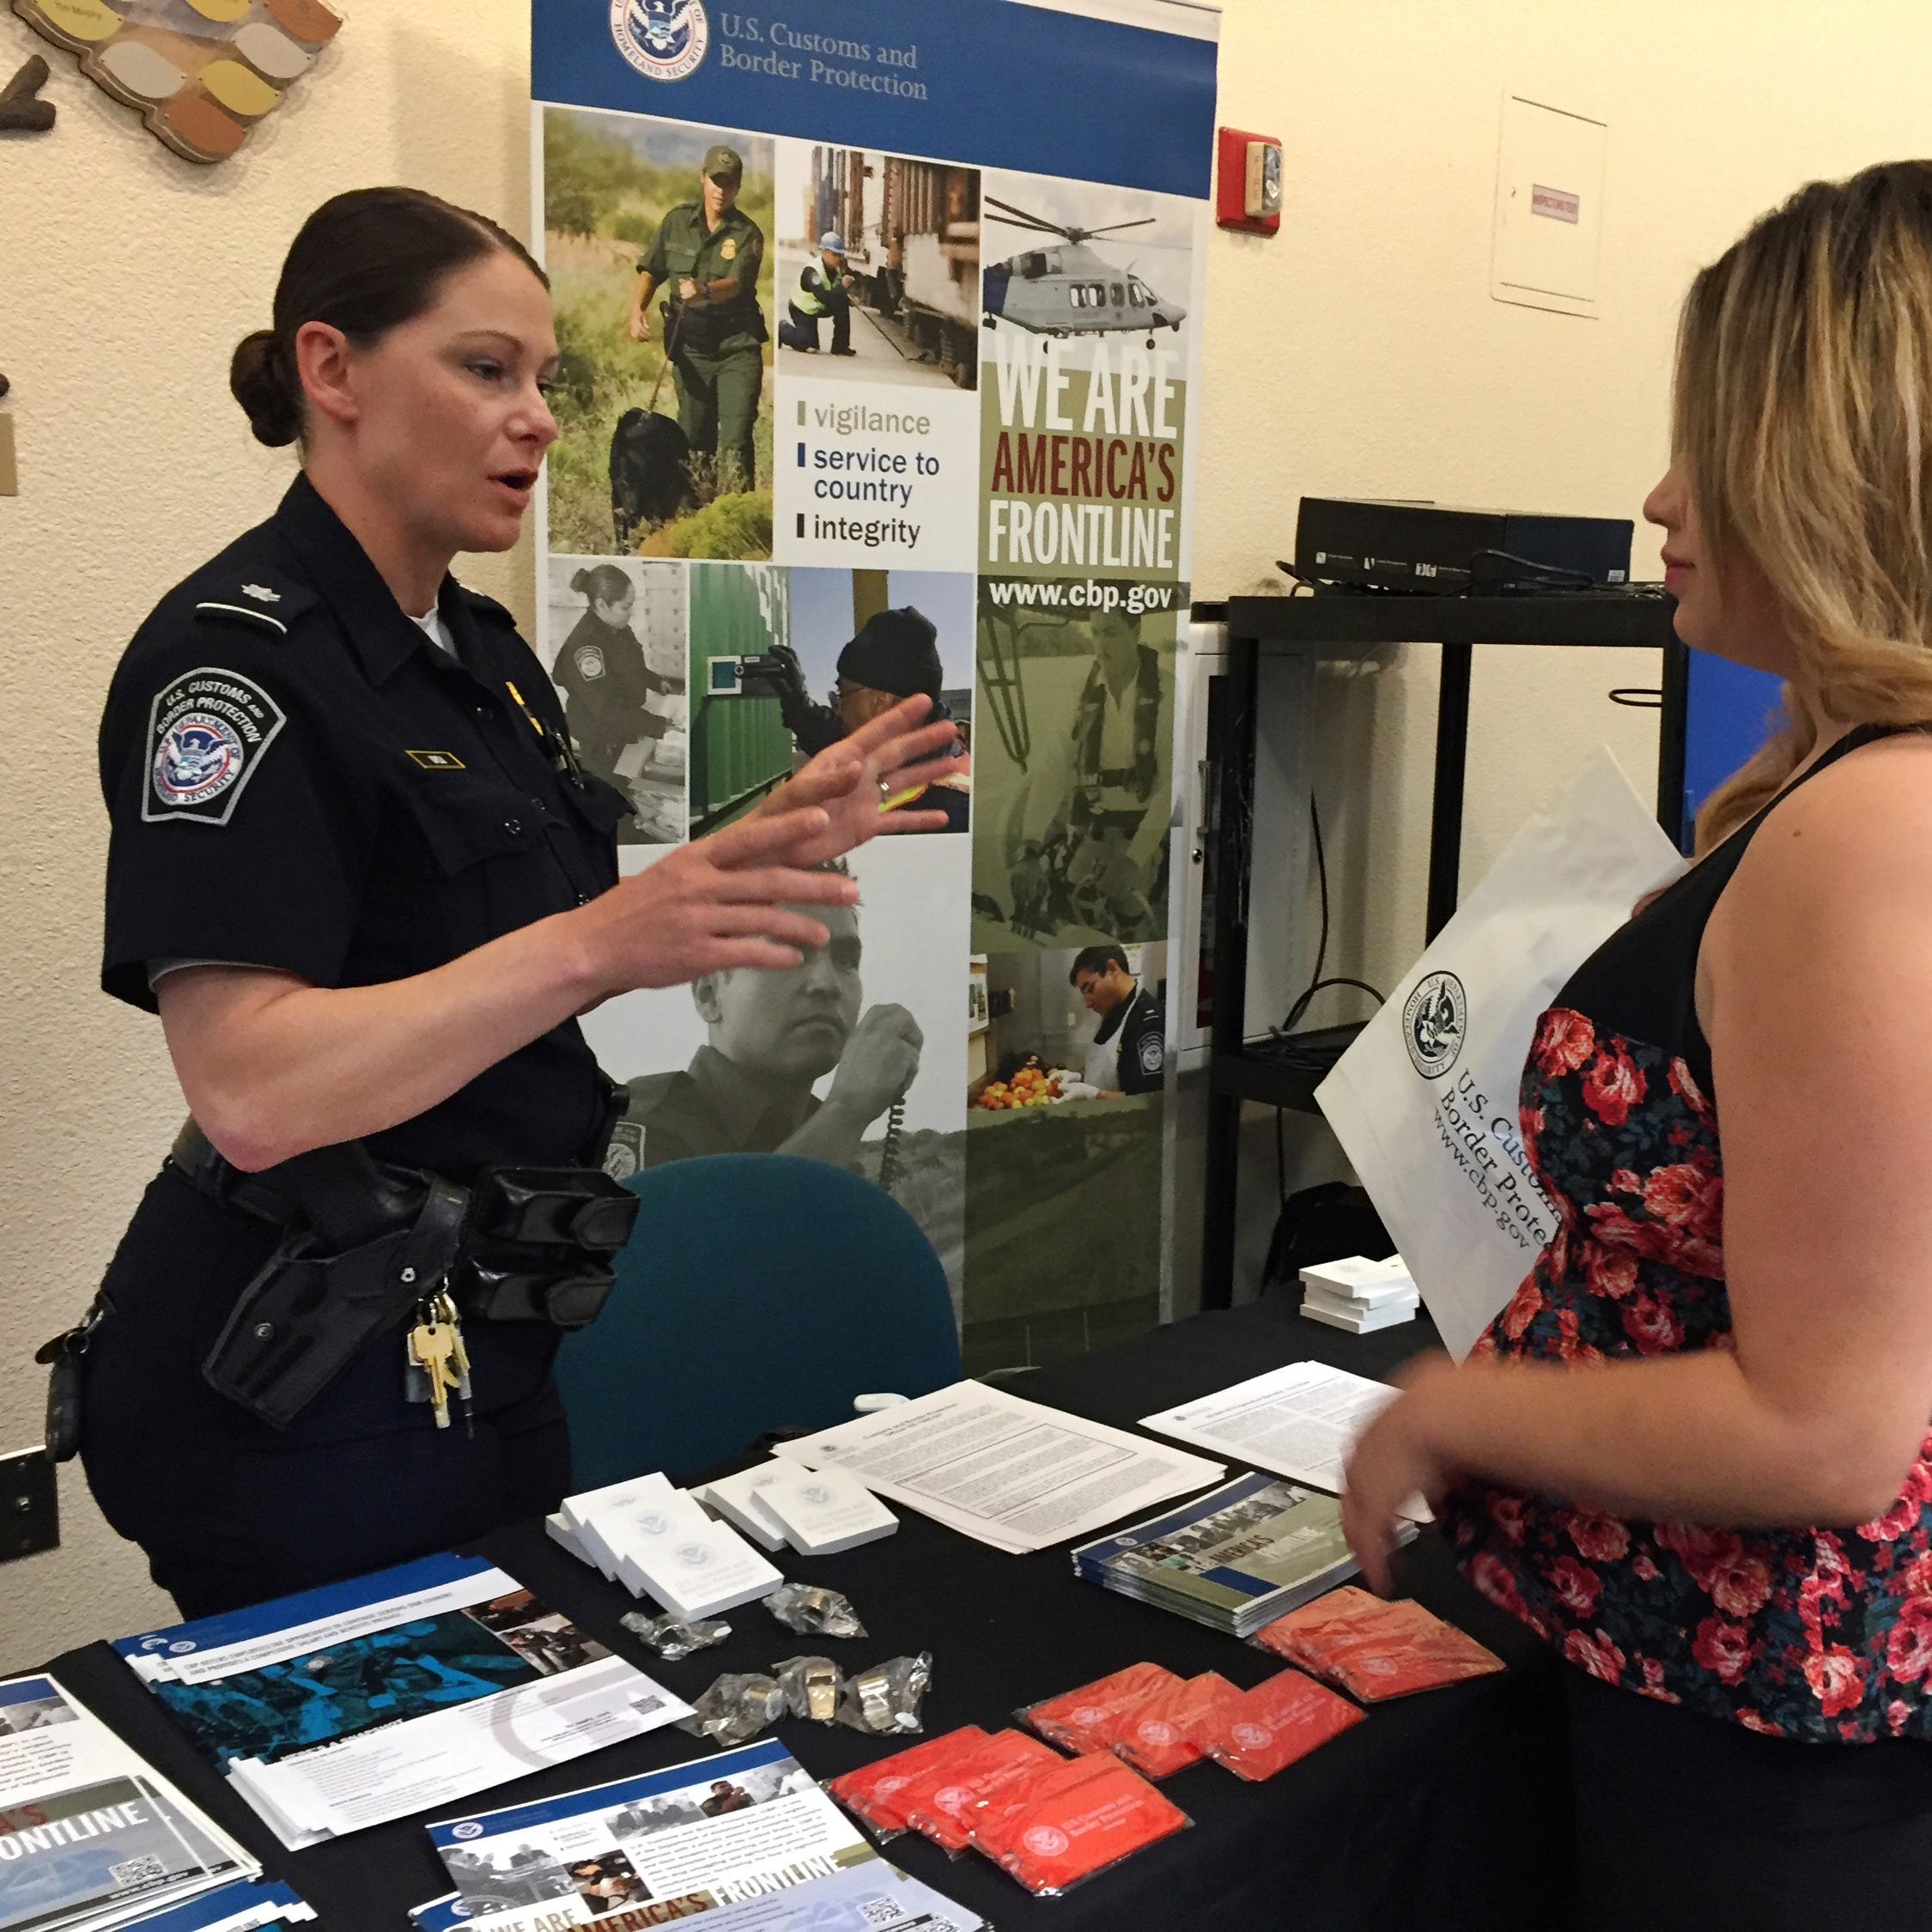 California college yanks invite for Customs and Border Protection to join job fair